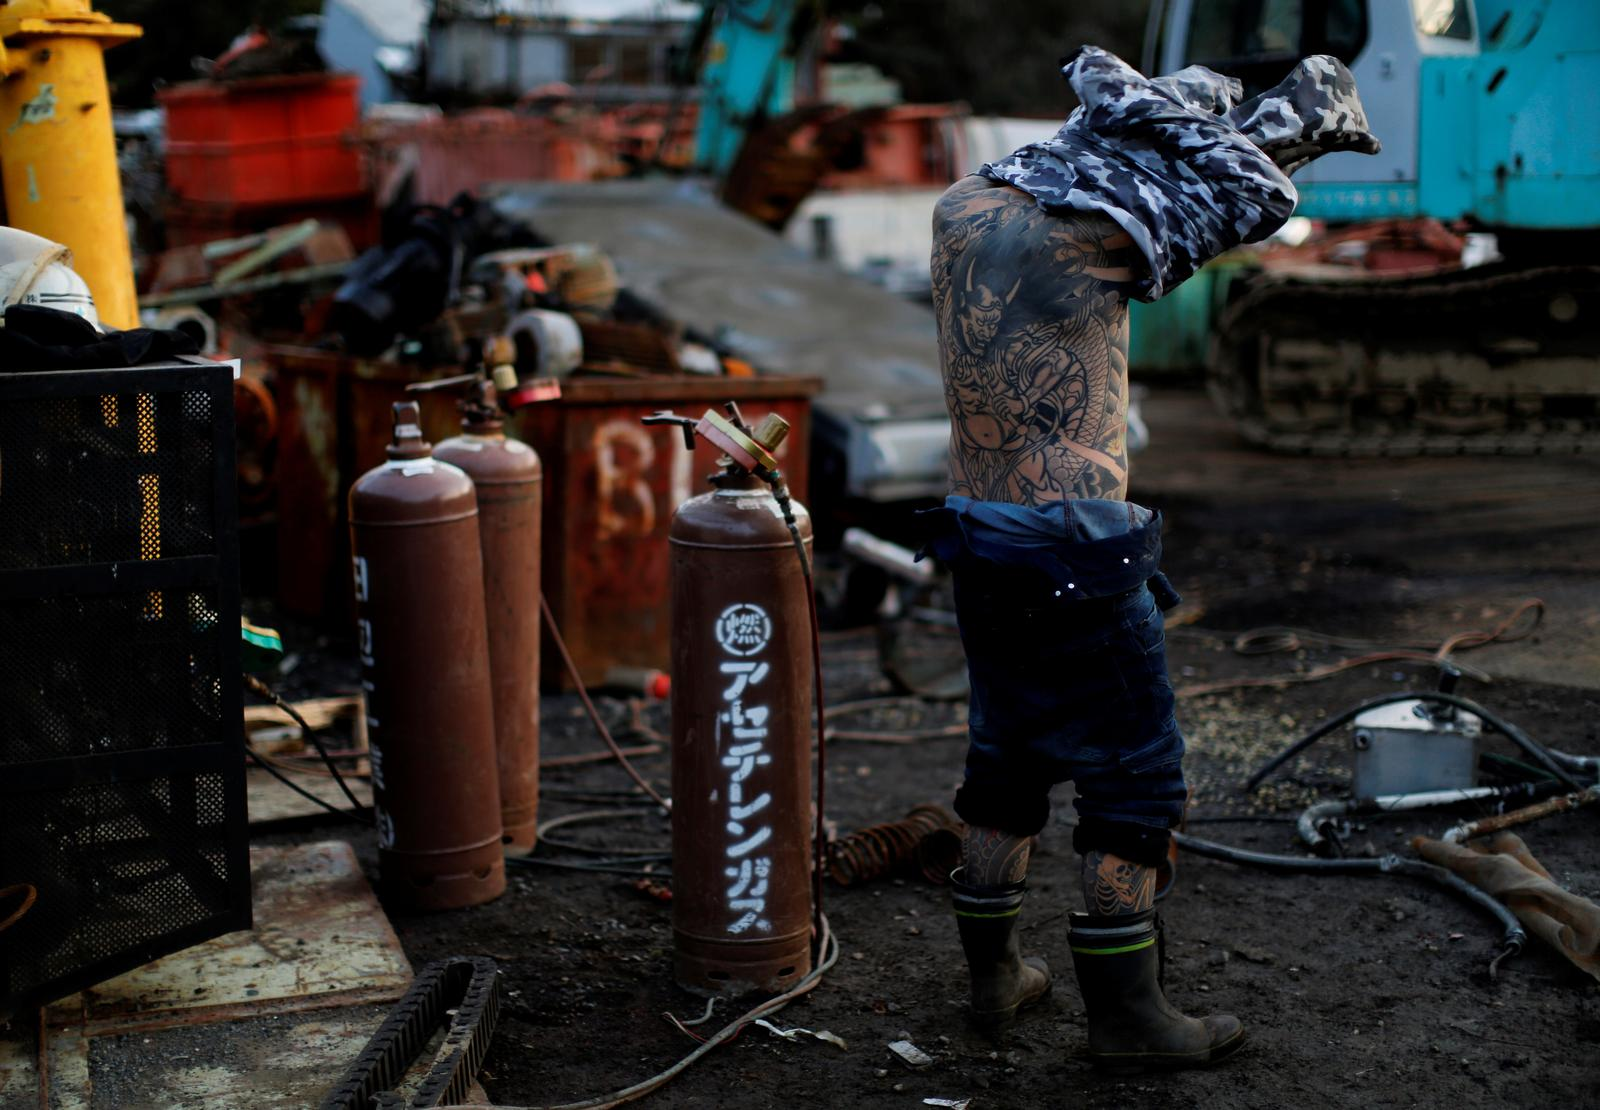 Scrap yard worker Hiroyuki Nemoto, 48, takes off his shirt as he gets ready to pose for a photo showing his tattoos at the scrap yard where he works in Hitachinaka, Ibaraki Prefecture, Japan, January 10, 2020. Photo: Reuters